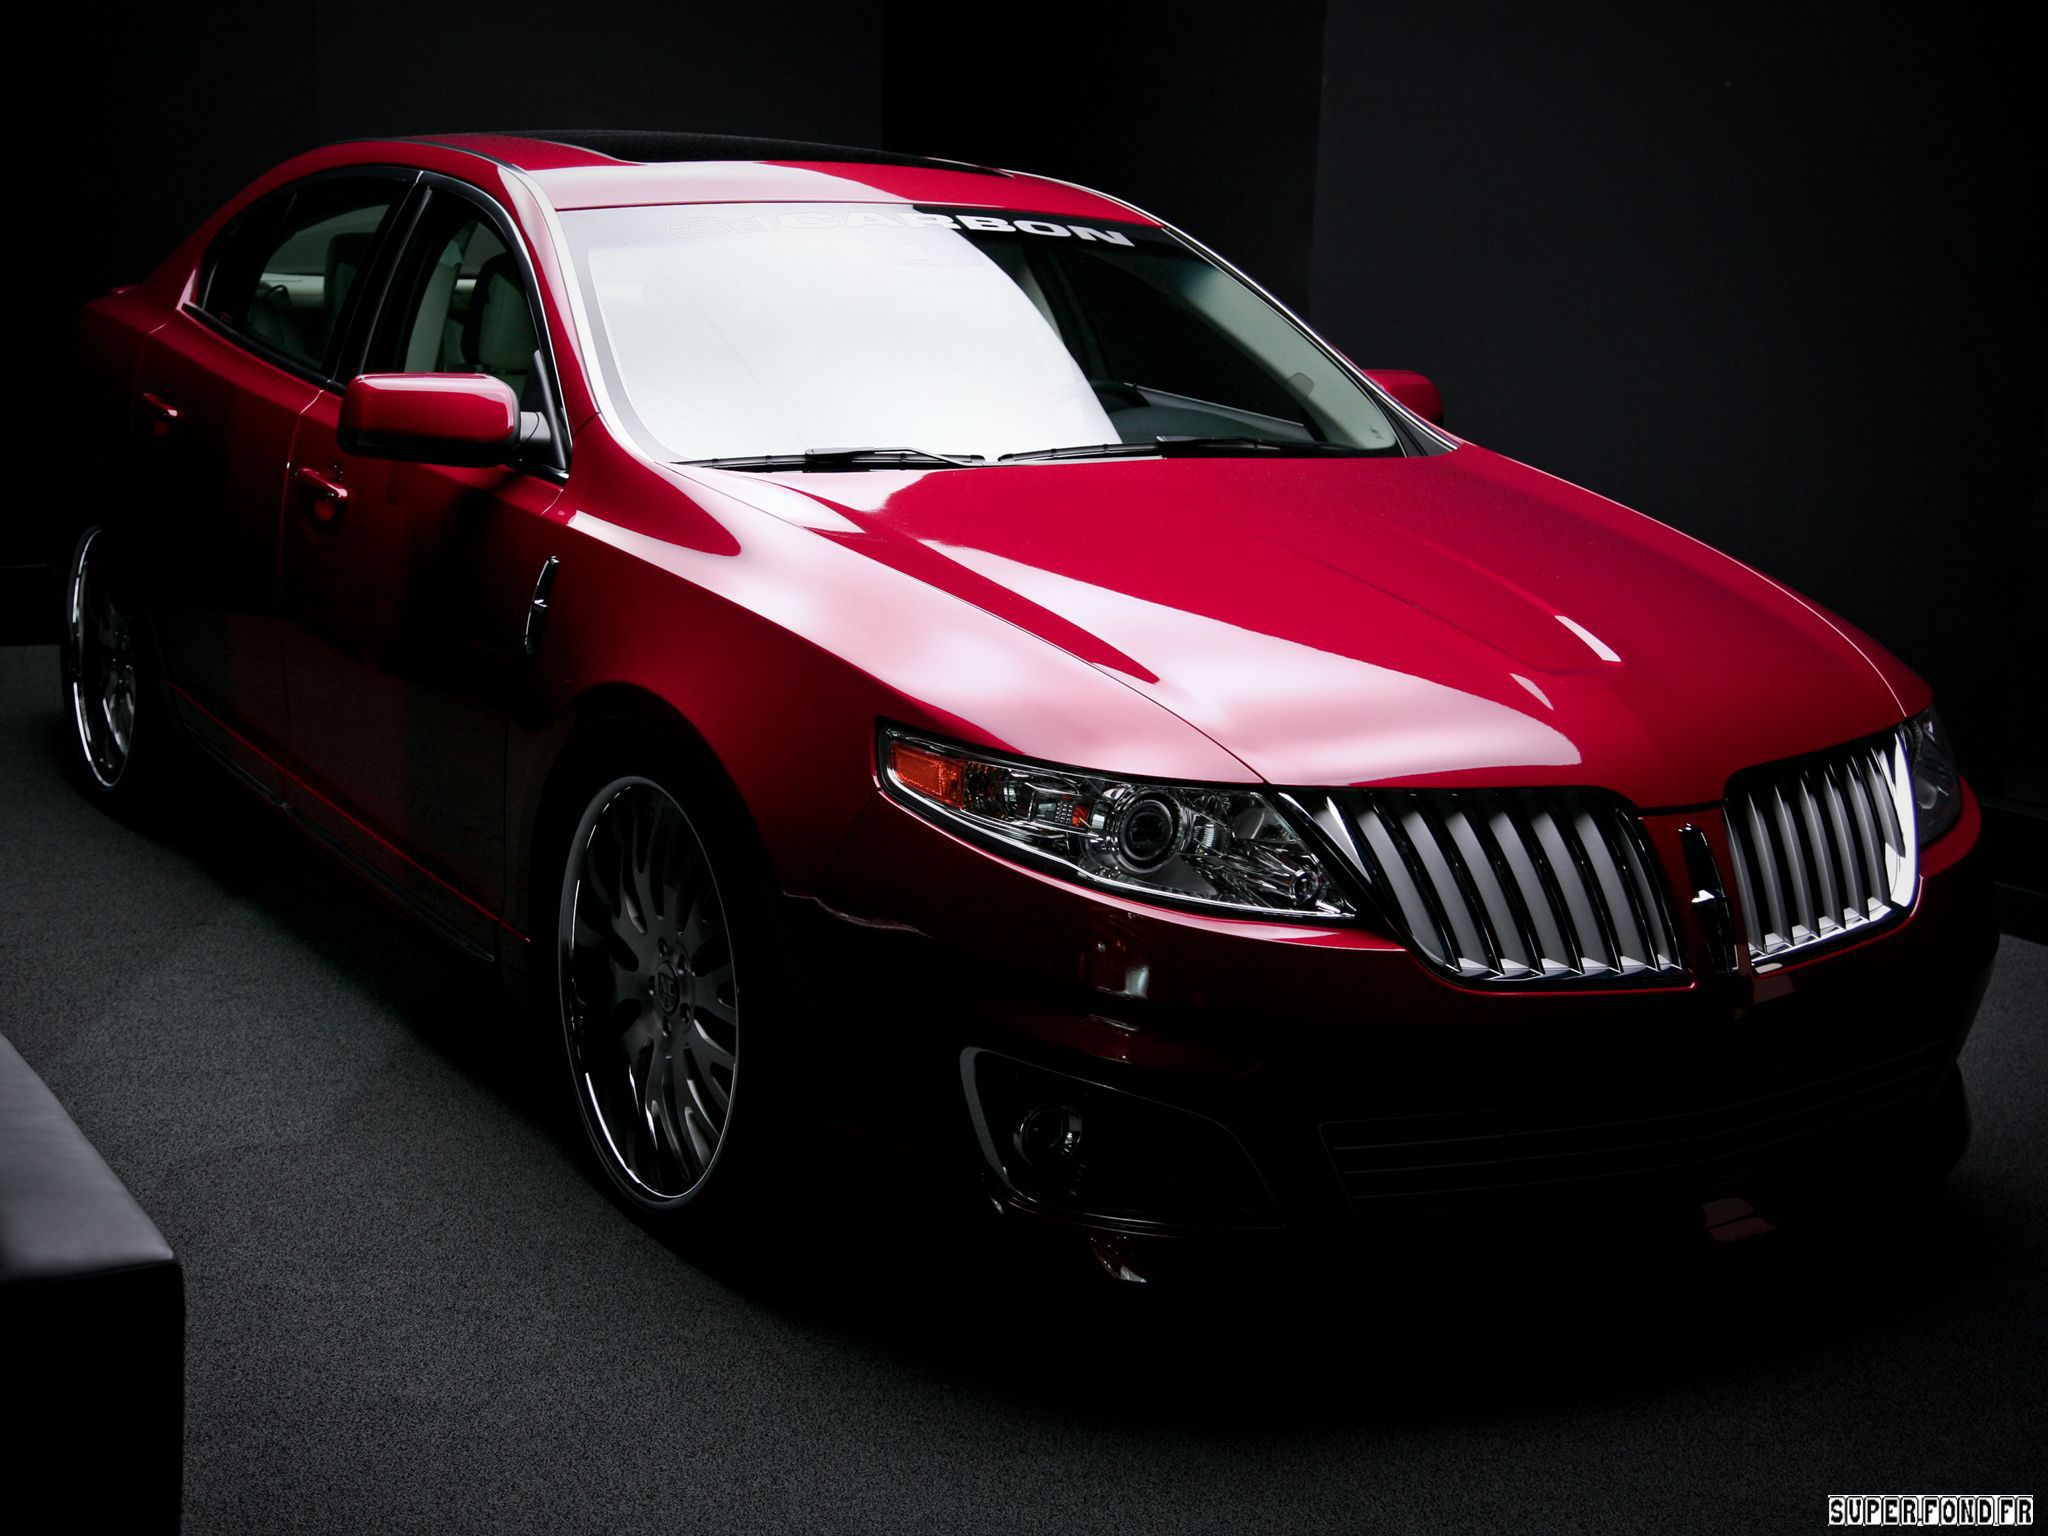 2009 3dcarbon Lincoln MKS